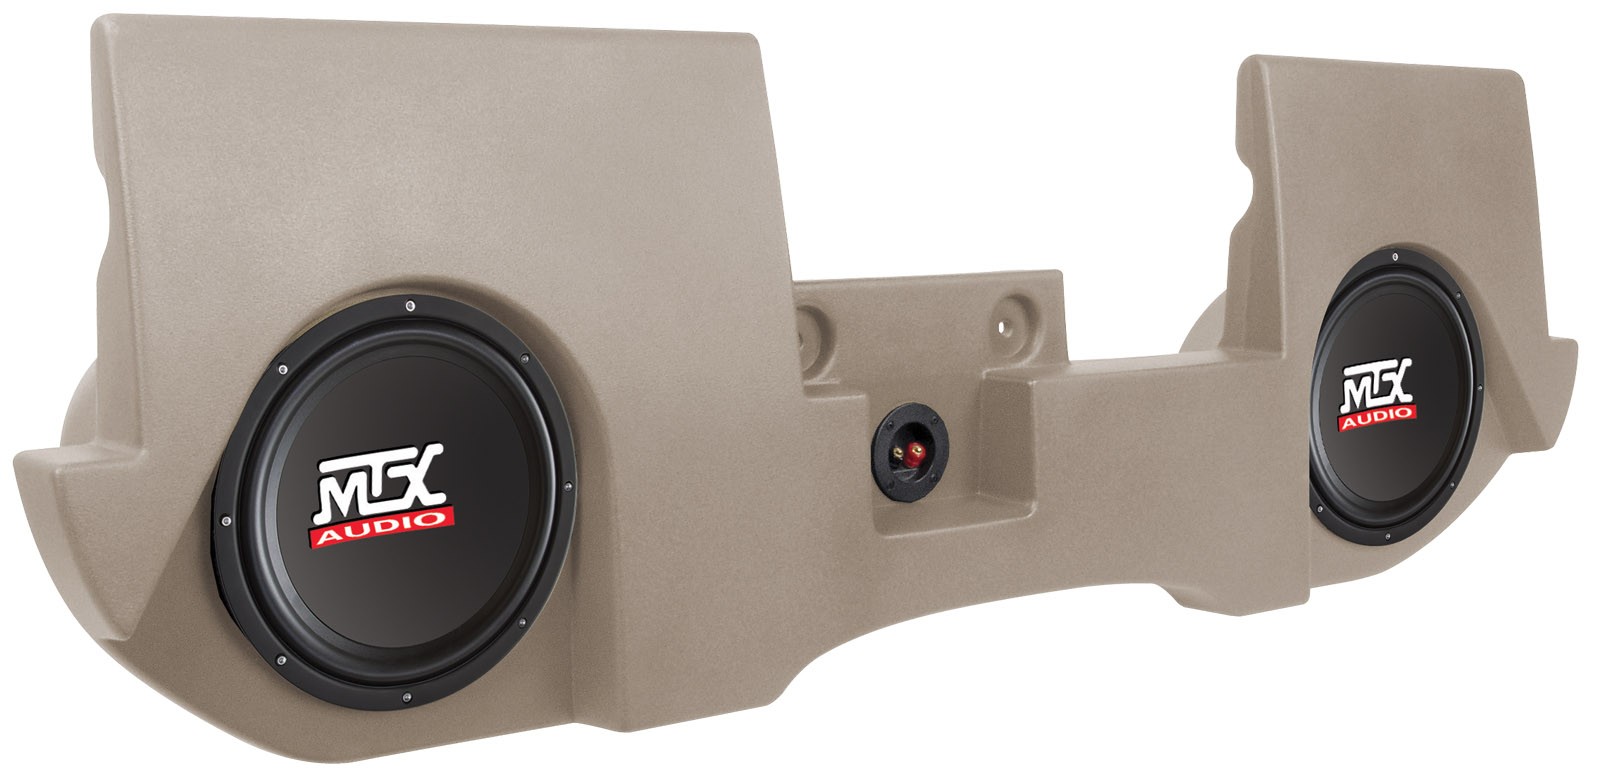 hight resolution of drqc20at tn thunderform amplified subwoofer enclosure dodge ram quad cab 2002 2016 tan mtx audio serious about sound